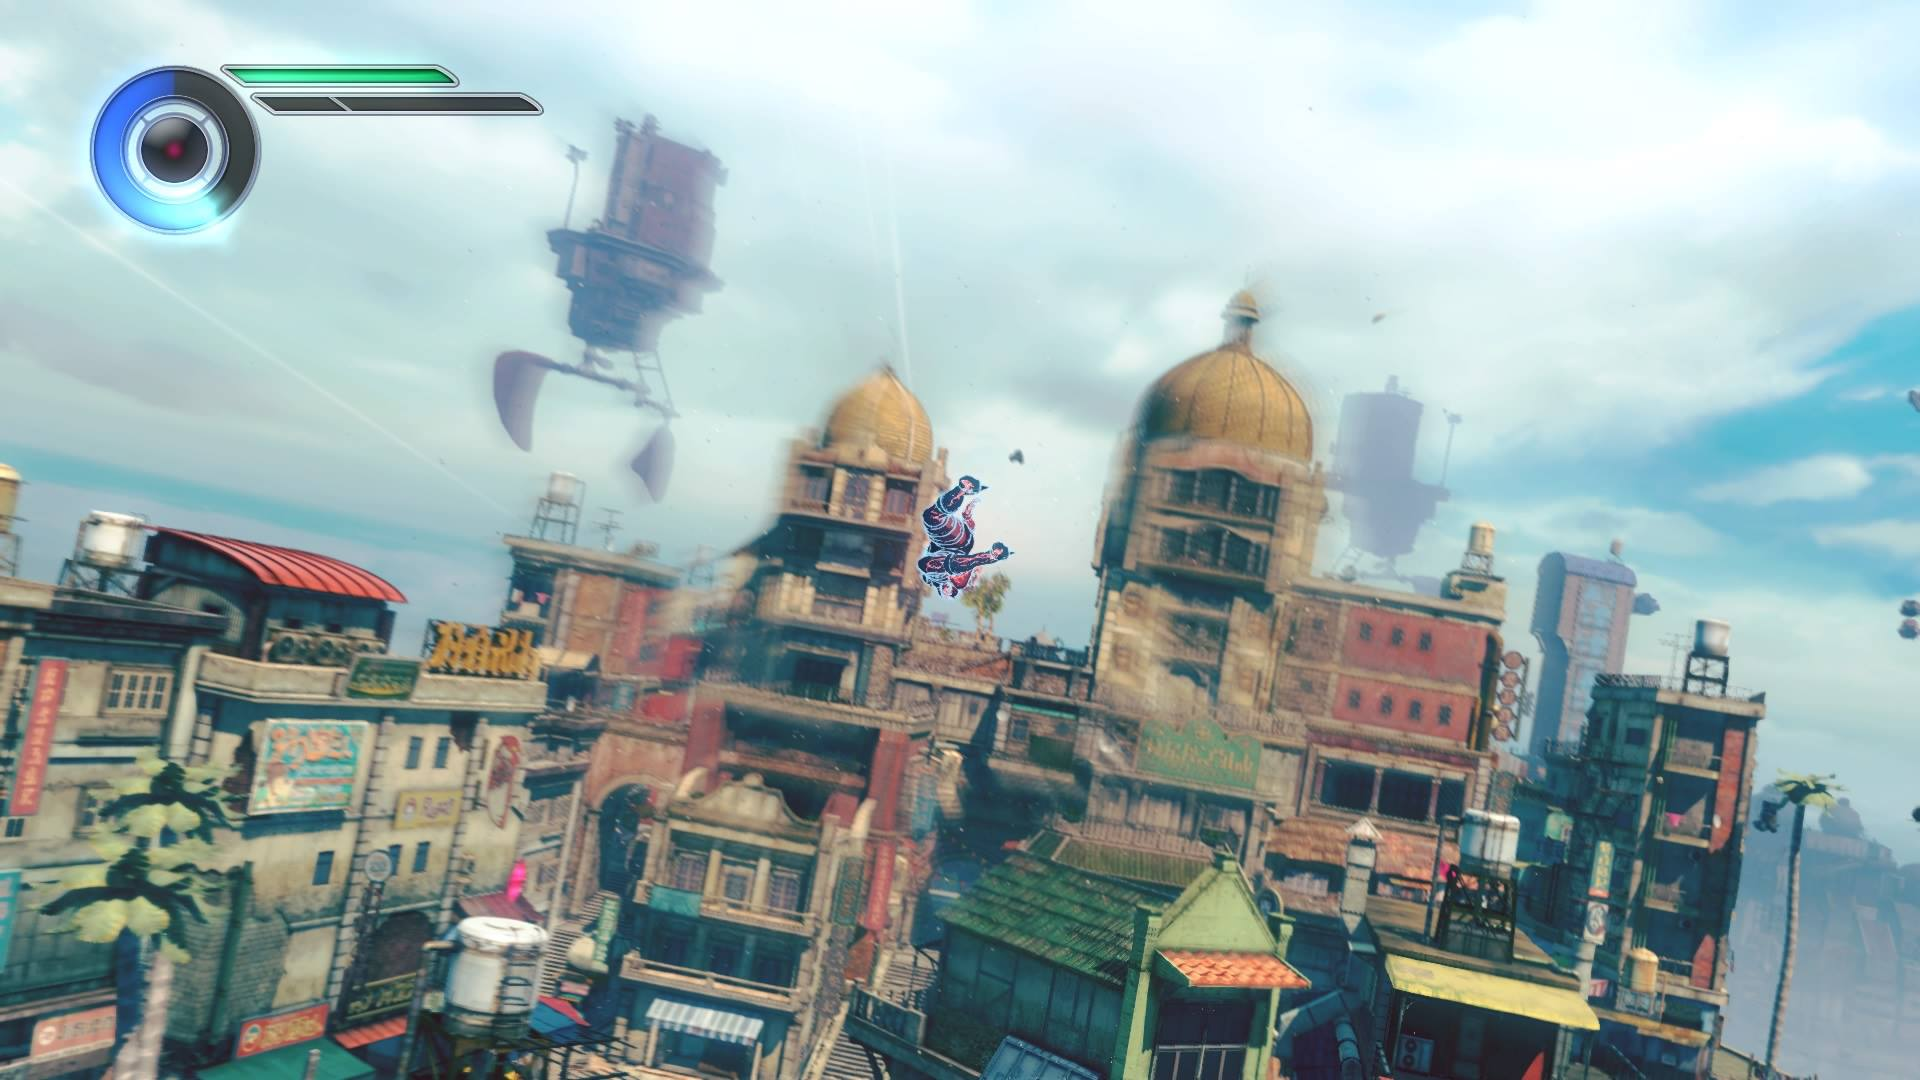 Manipulate gravity and fly through the fictional town of Jirga Para Lhao in Gravity Rush 2